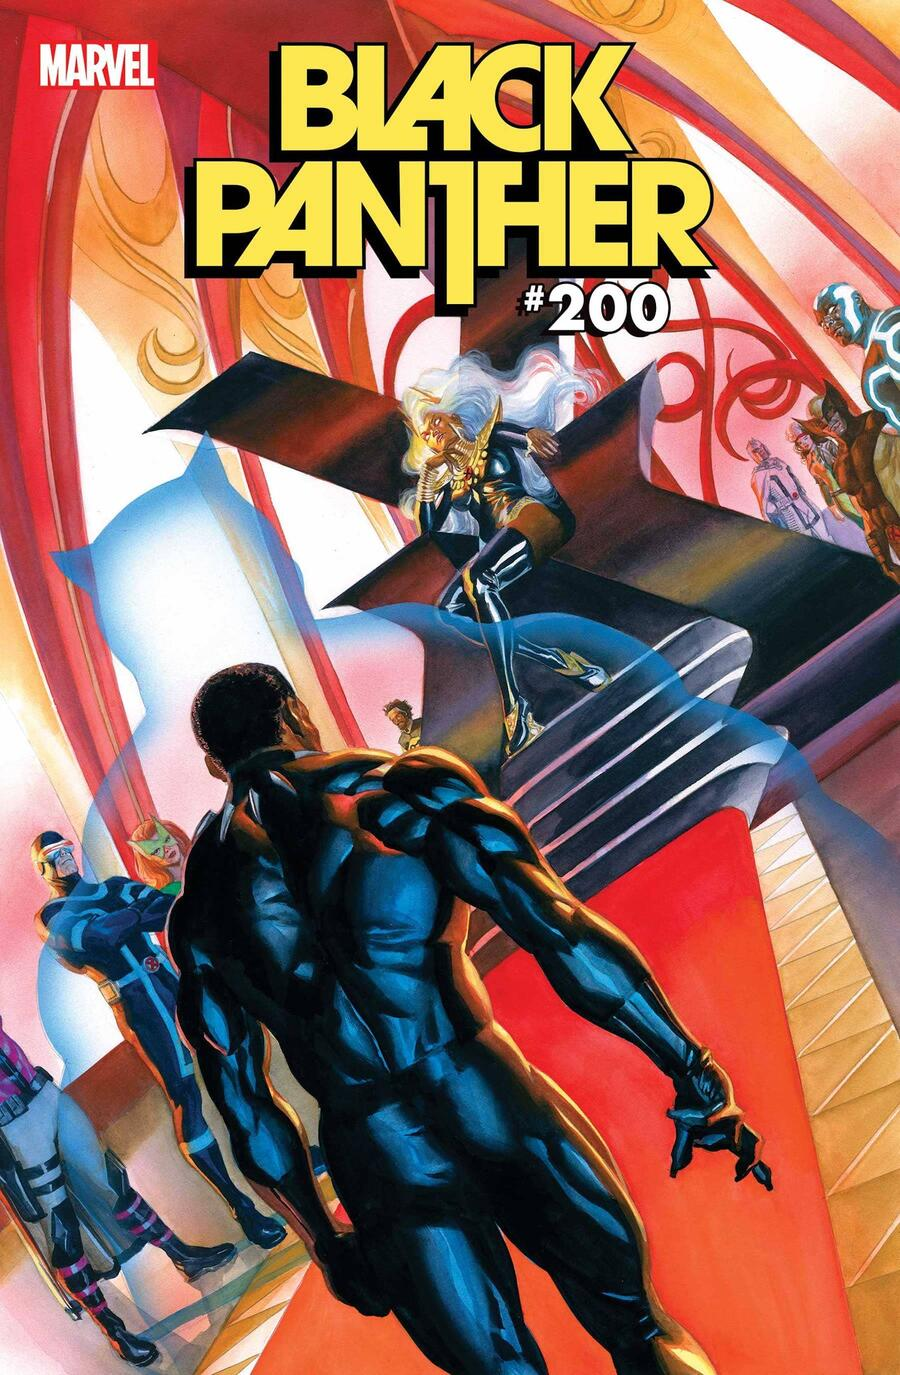 Black Panther' Celebrates 200th Issue with Giant-Sized Spectacular   Marvel